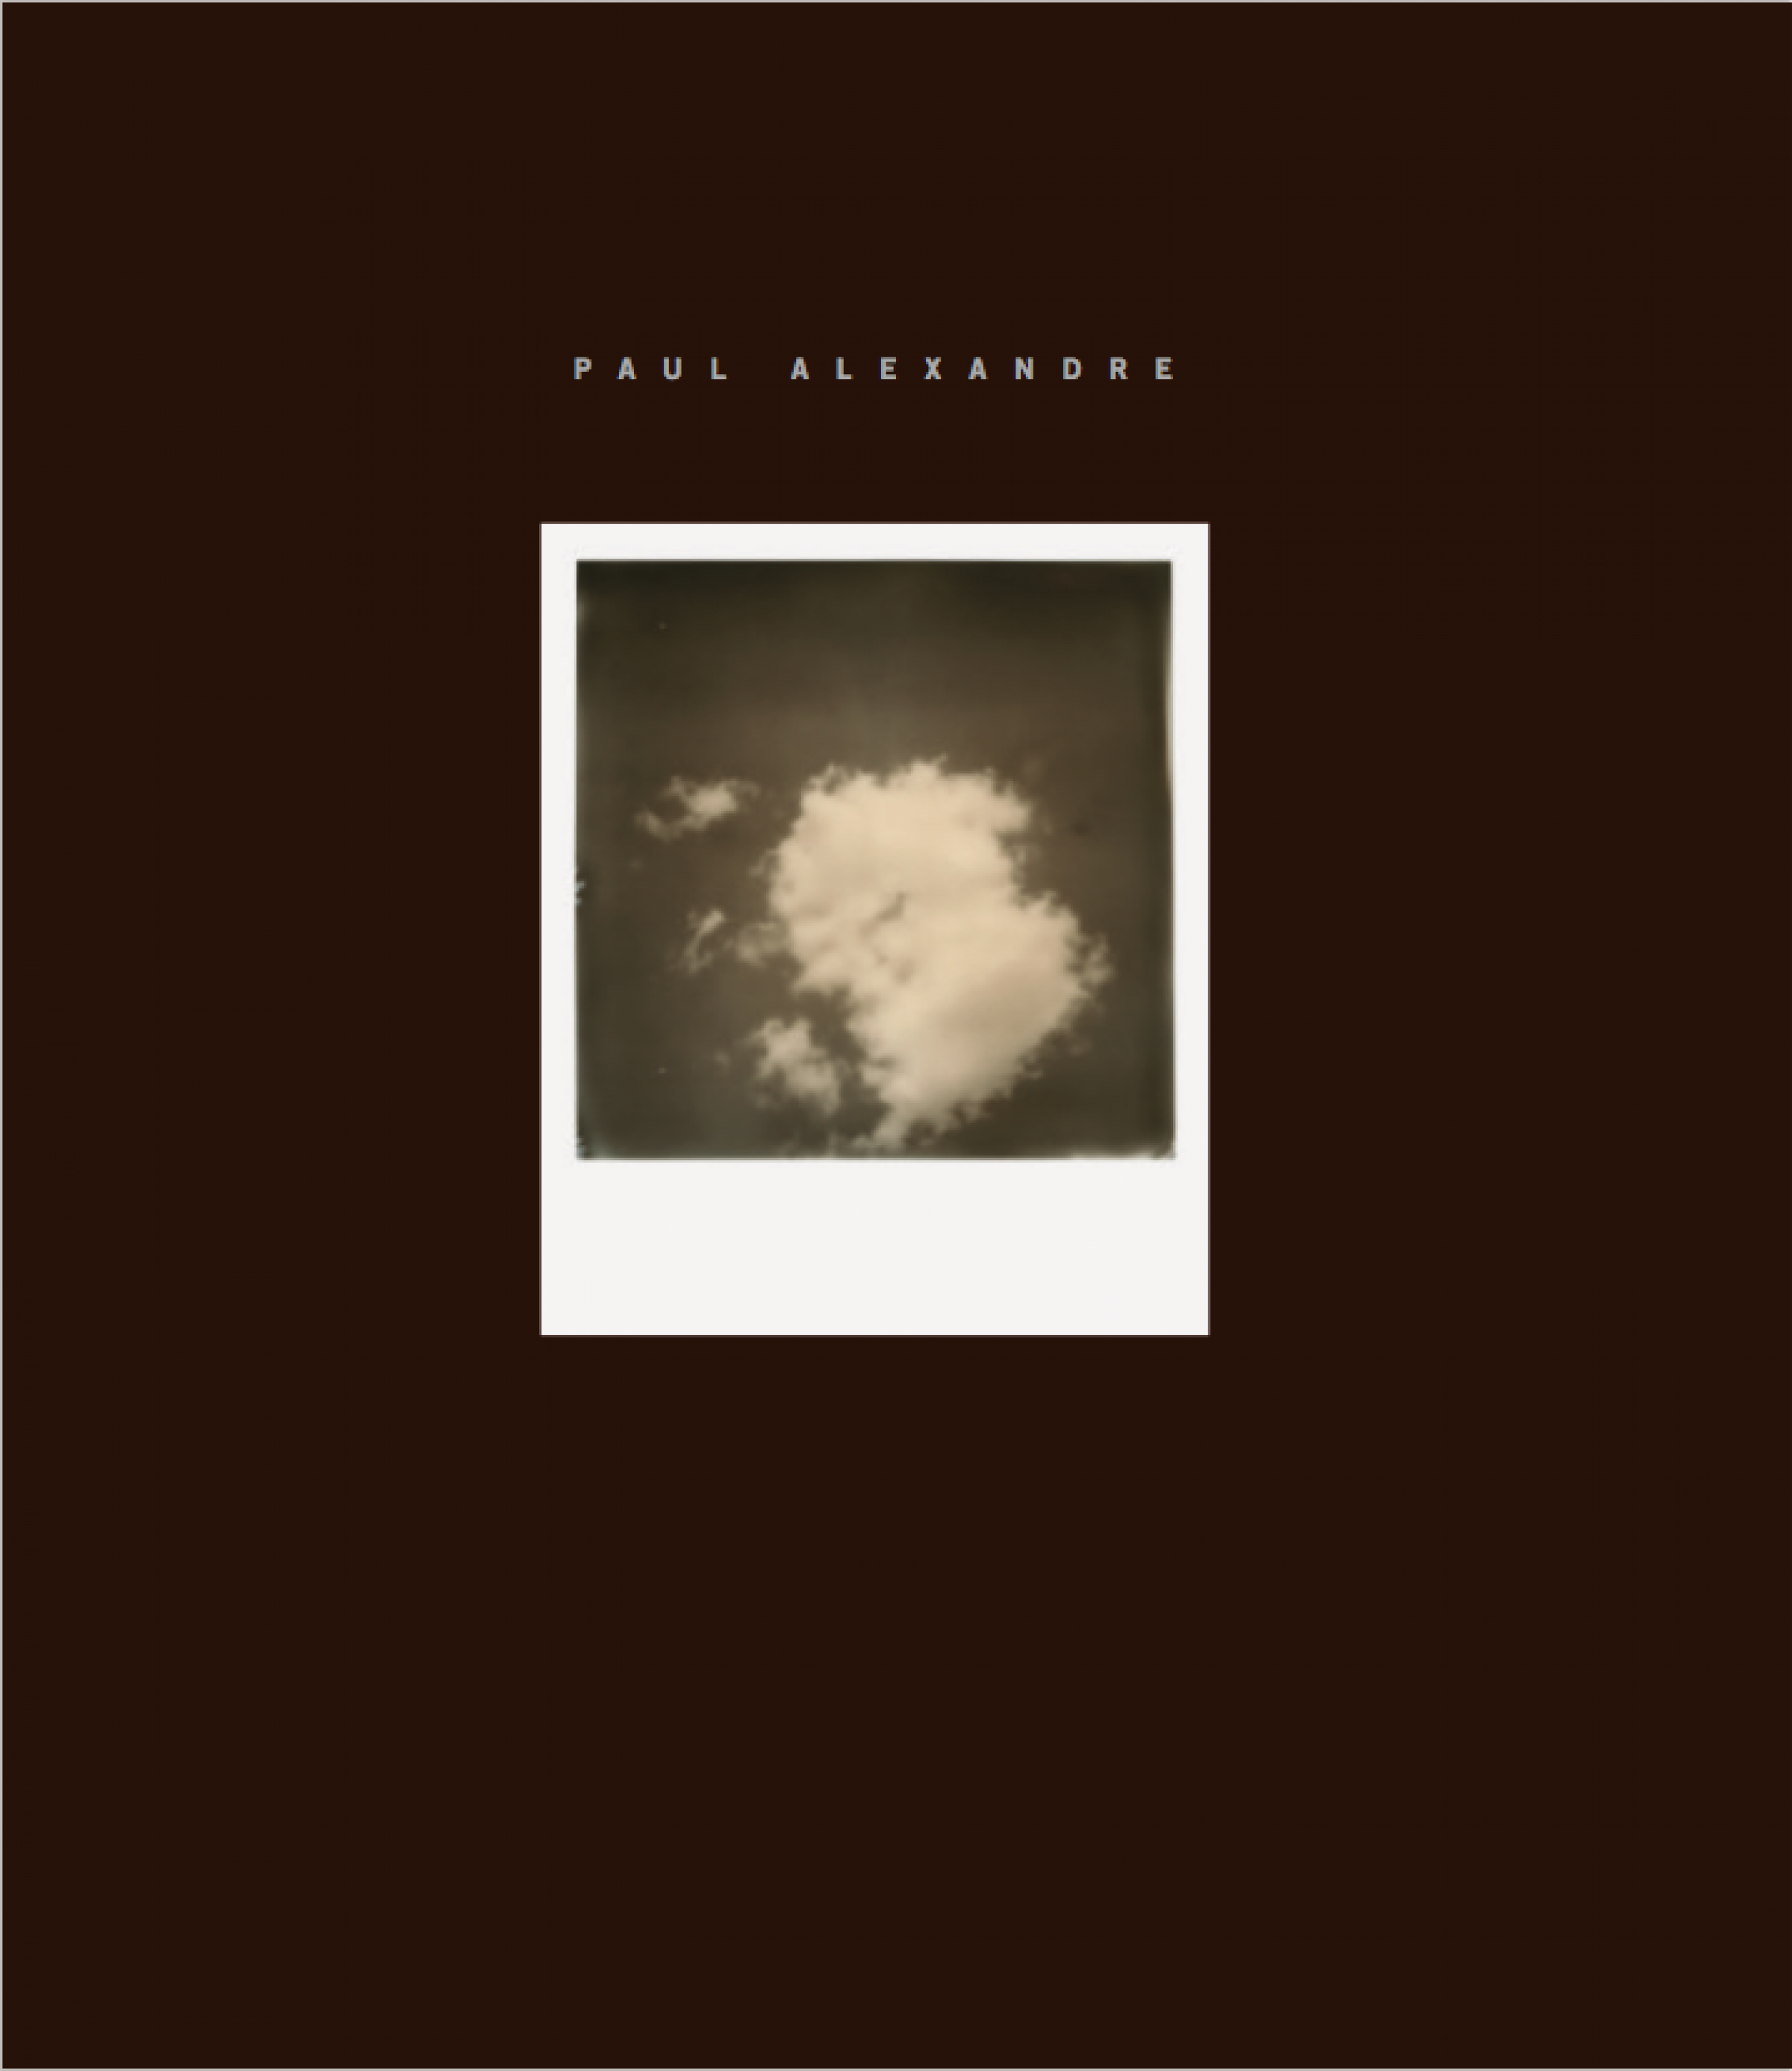 Paul Alexandre: La Lenteur / Slowness